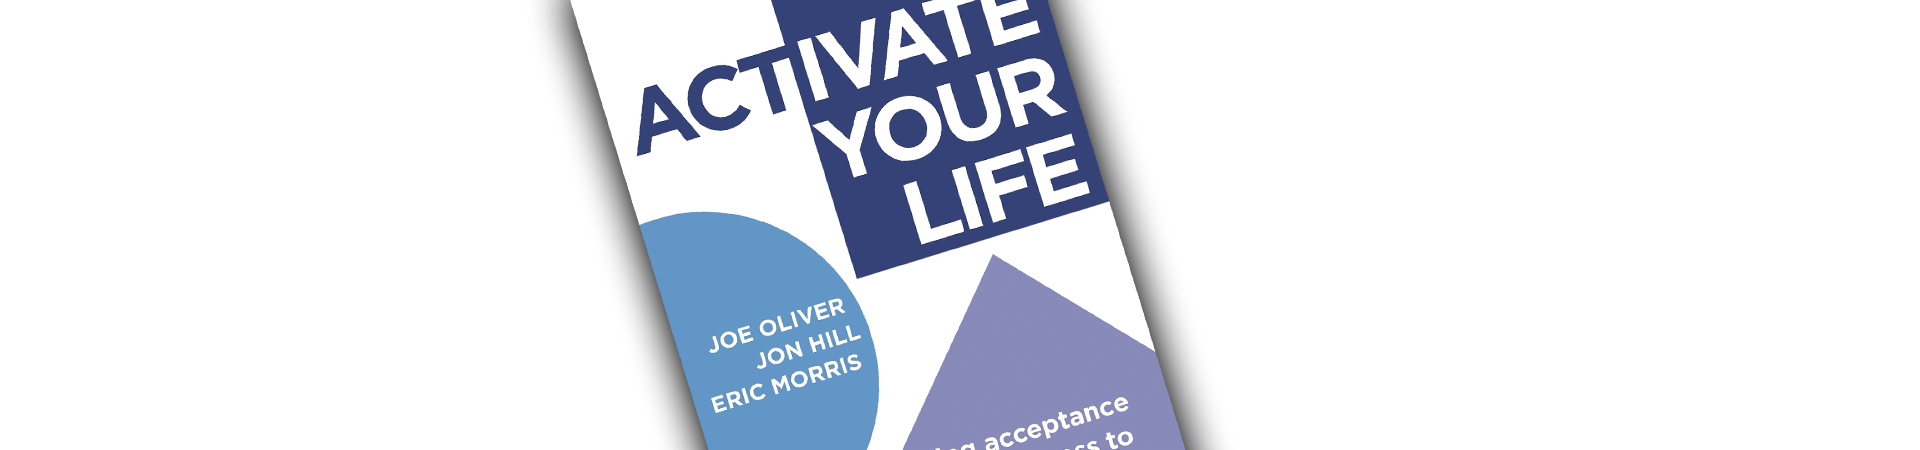 ACTivate-Your-Life-Slide-3